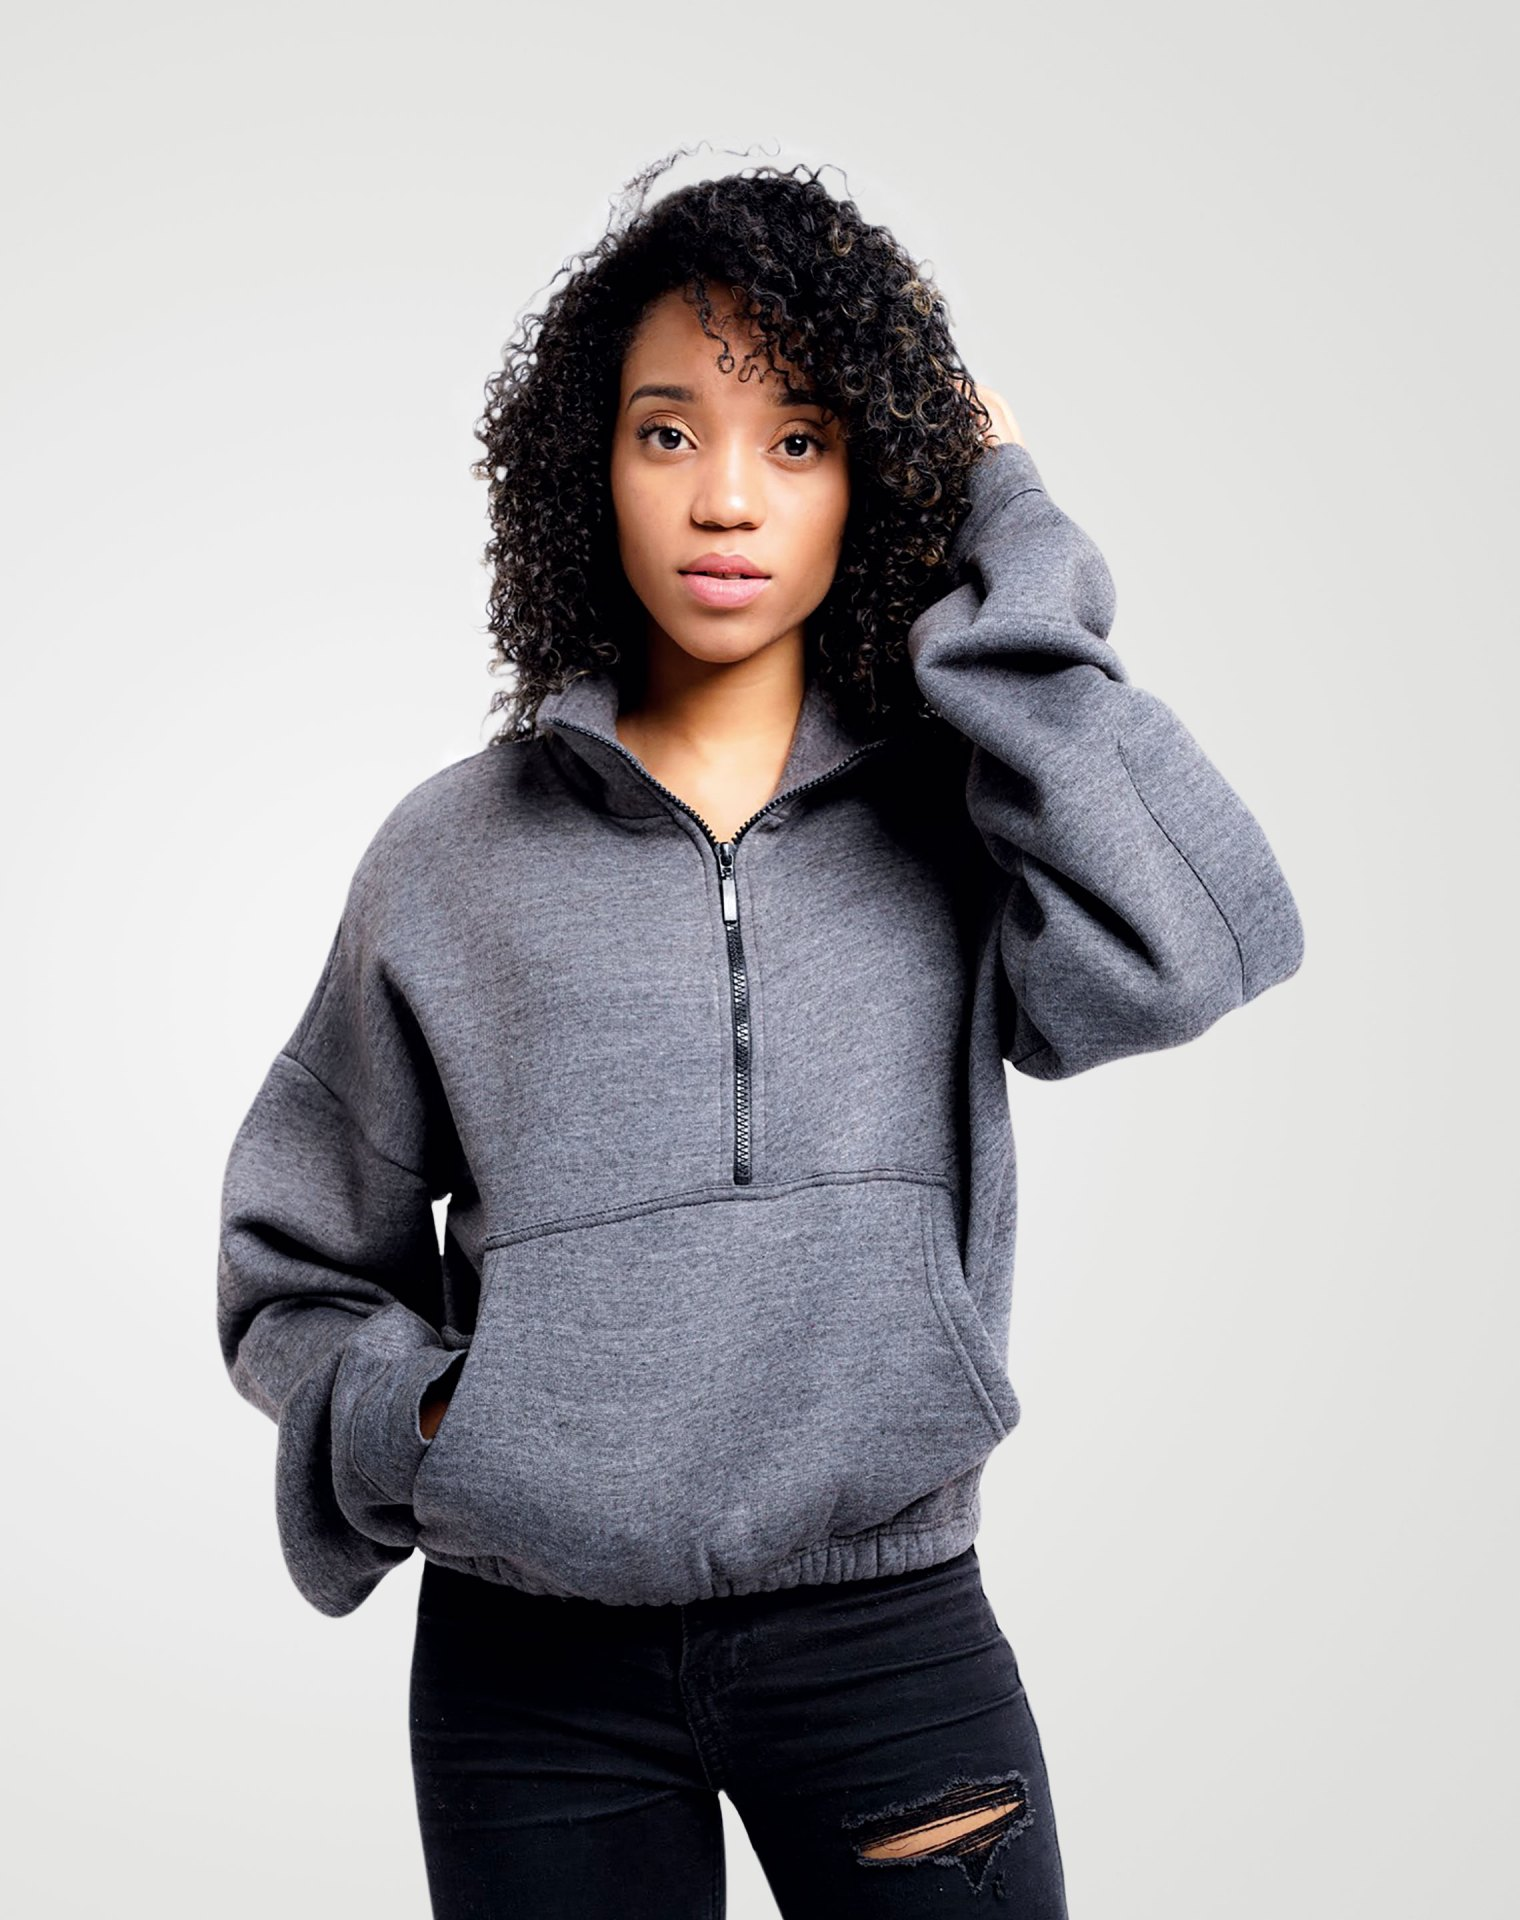 Image 1 of Womens High Neck Crop Top Zipper Pullover color Grey and sizes 8,10,12 from Noroze